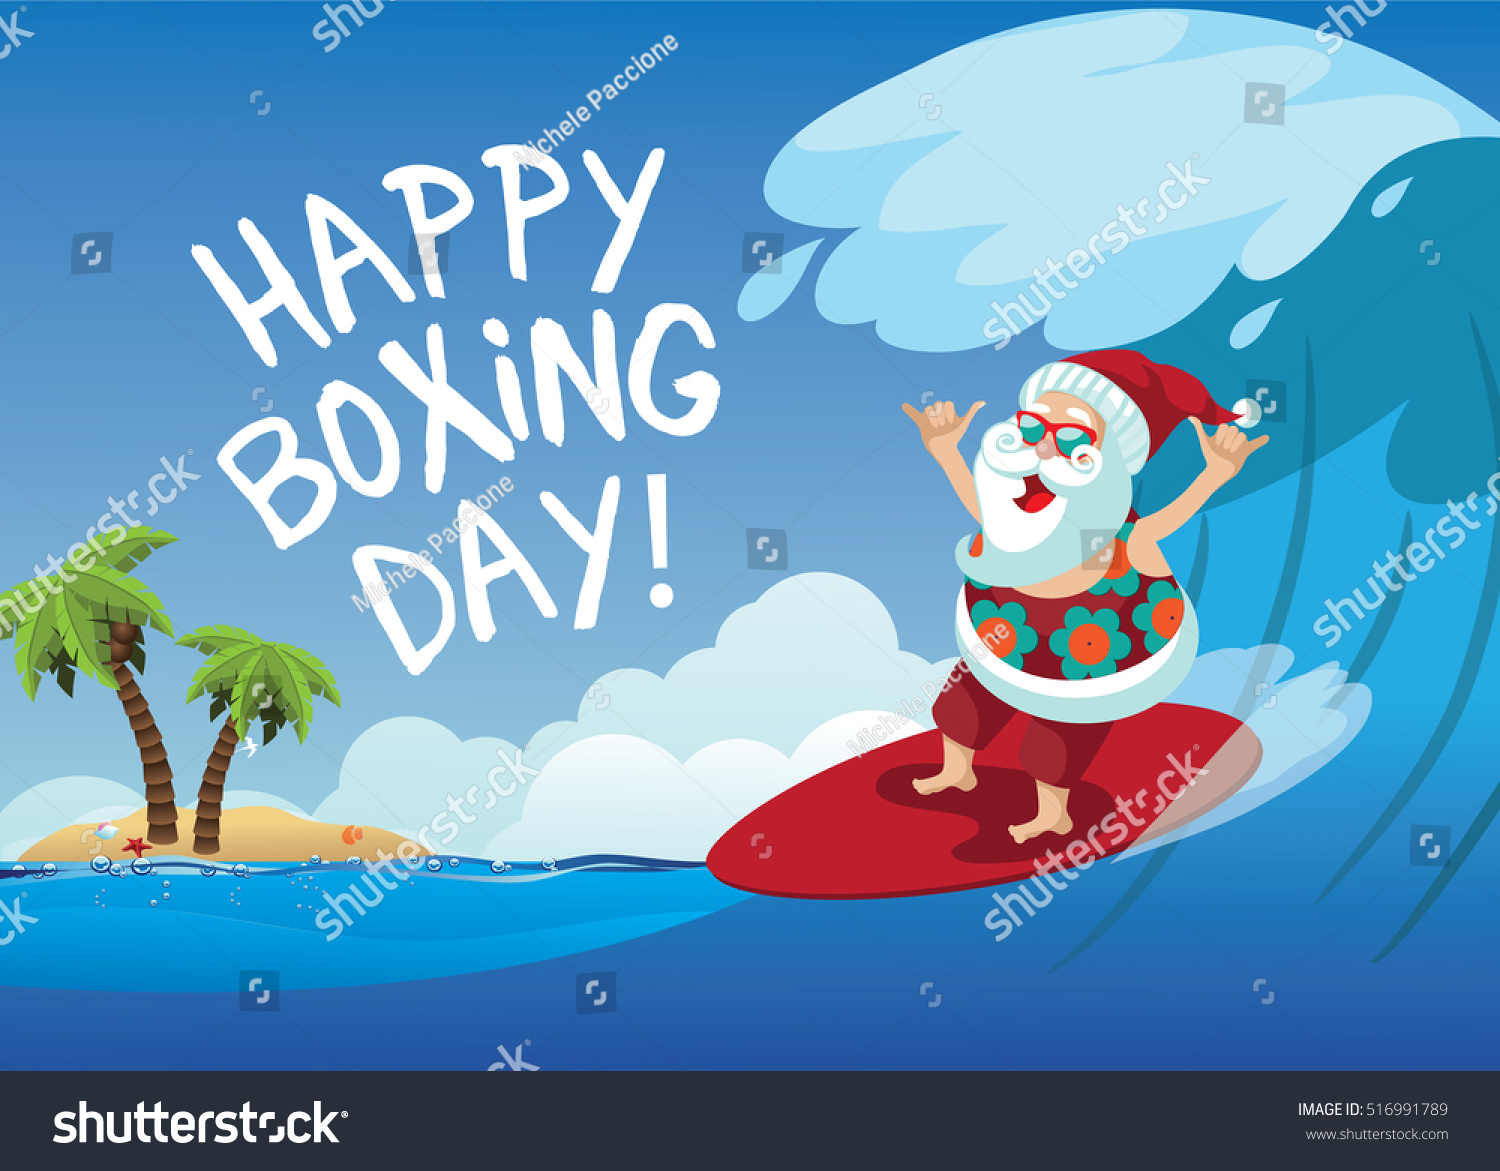 Cartoon day Boxing pictures